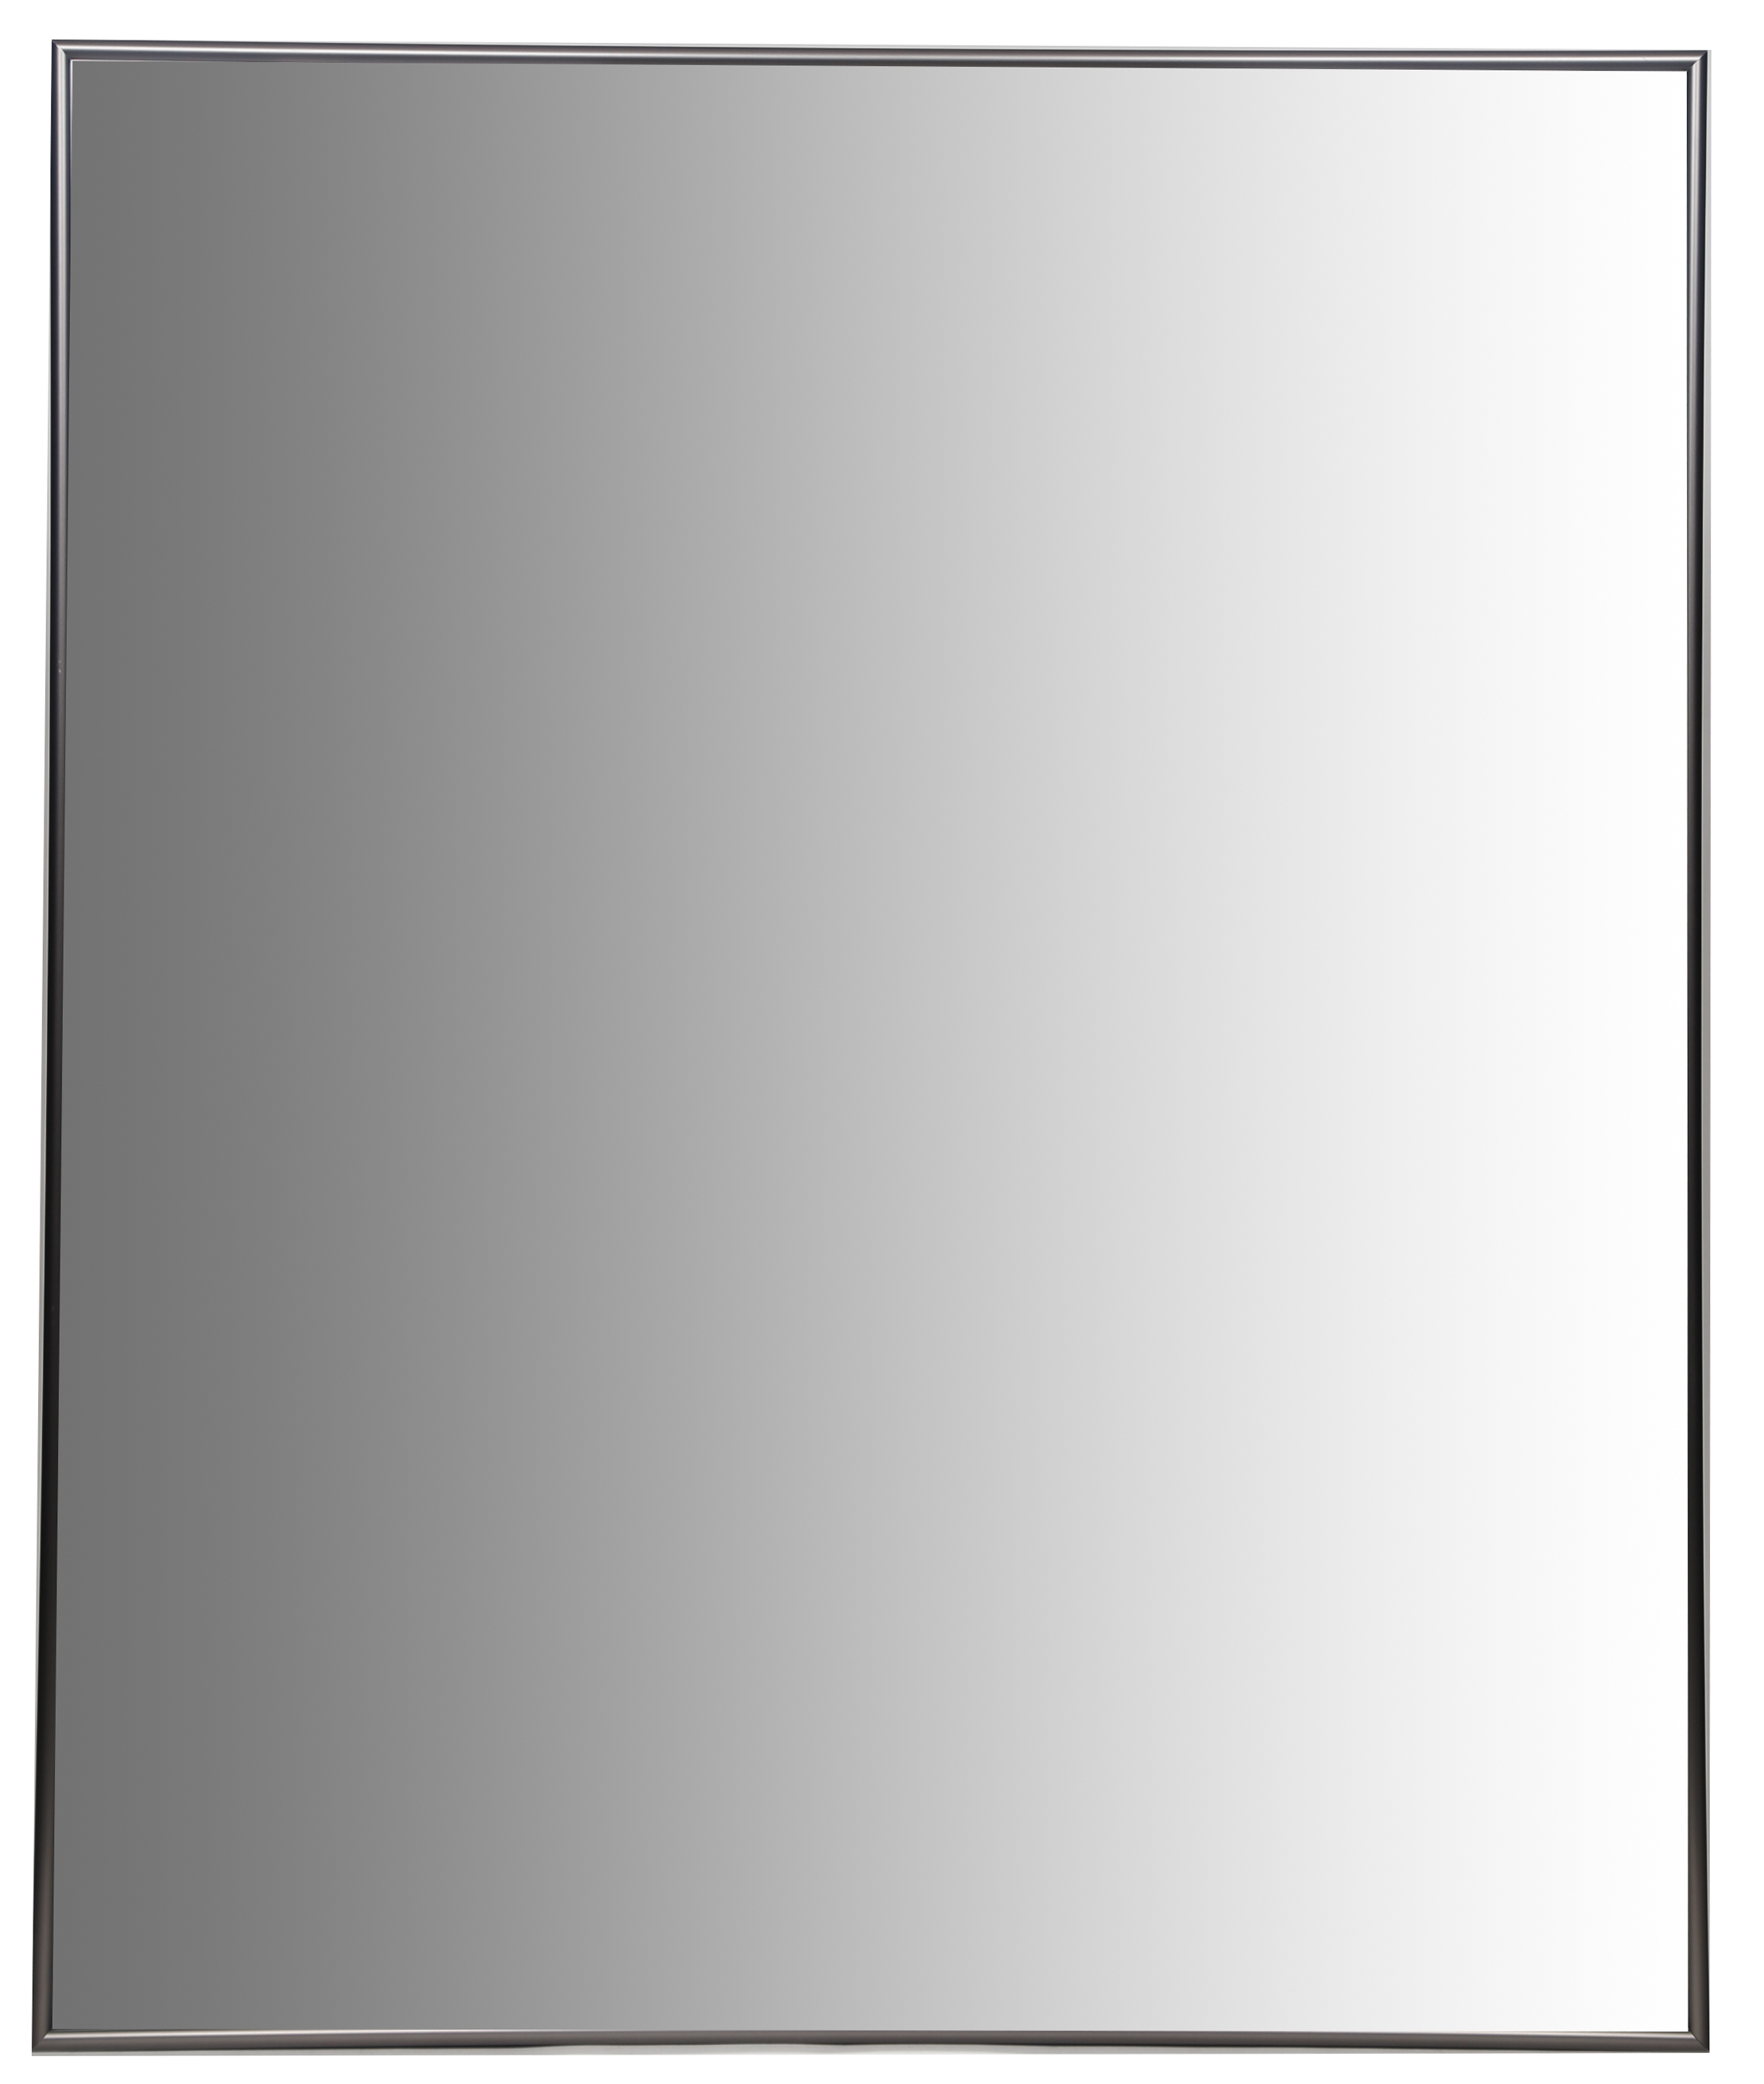 "Click here to buy 24""x30"" Nickel Aluminum Vanity Mirror, with 3 8 Wide Moulding by Pinnacle."